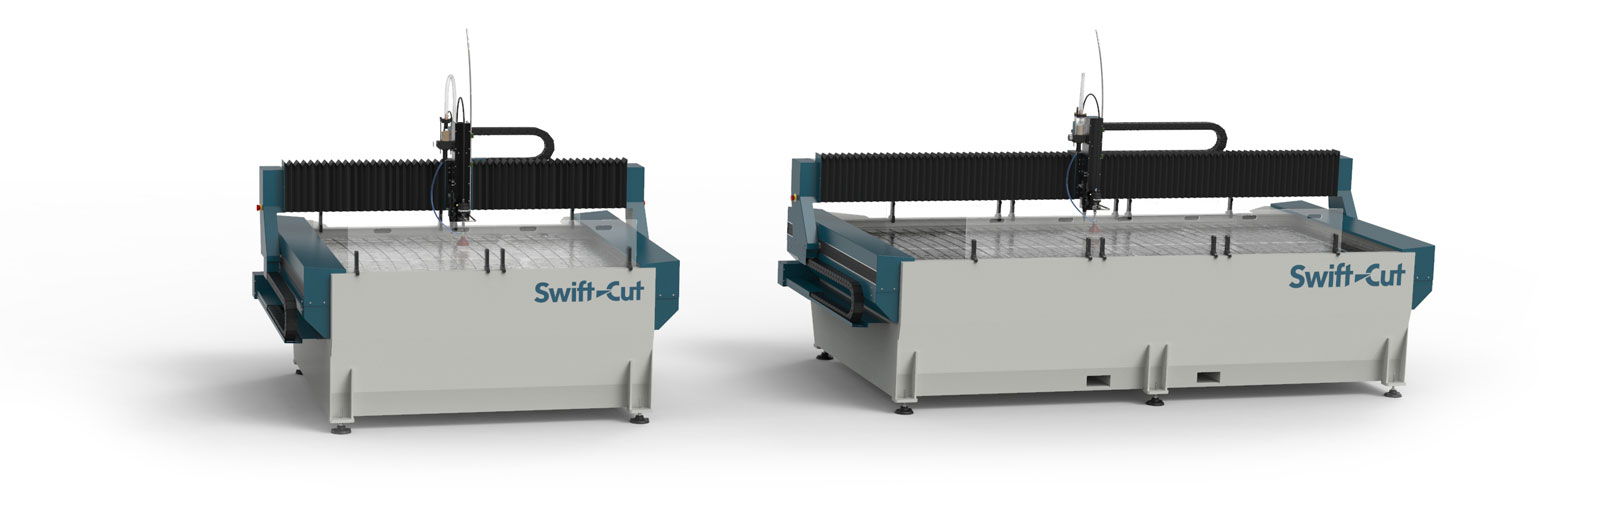 Swift-Jet machines